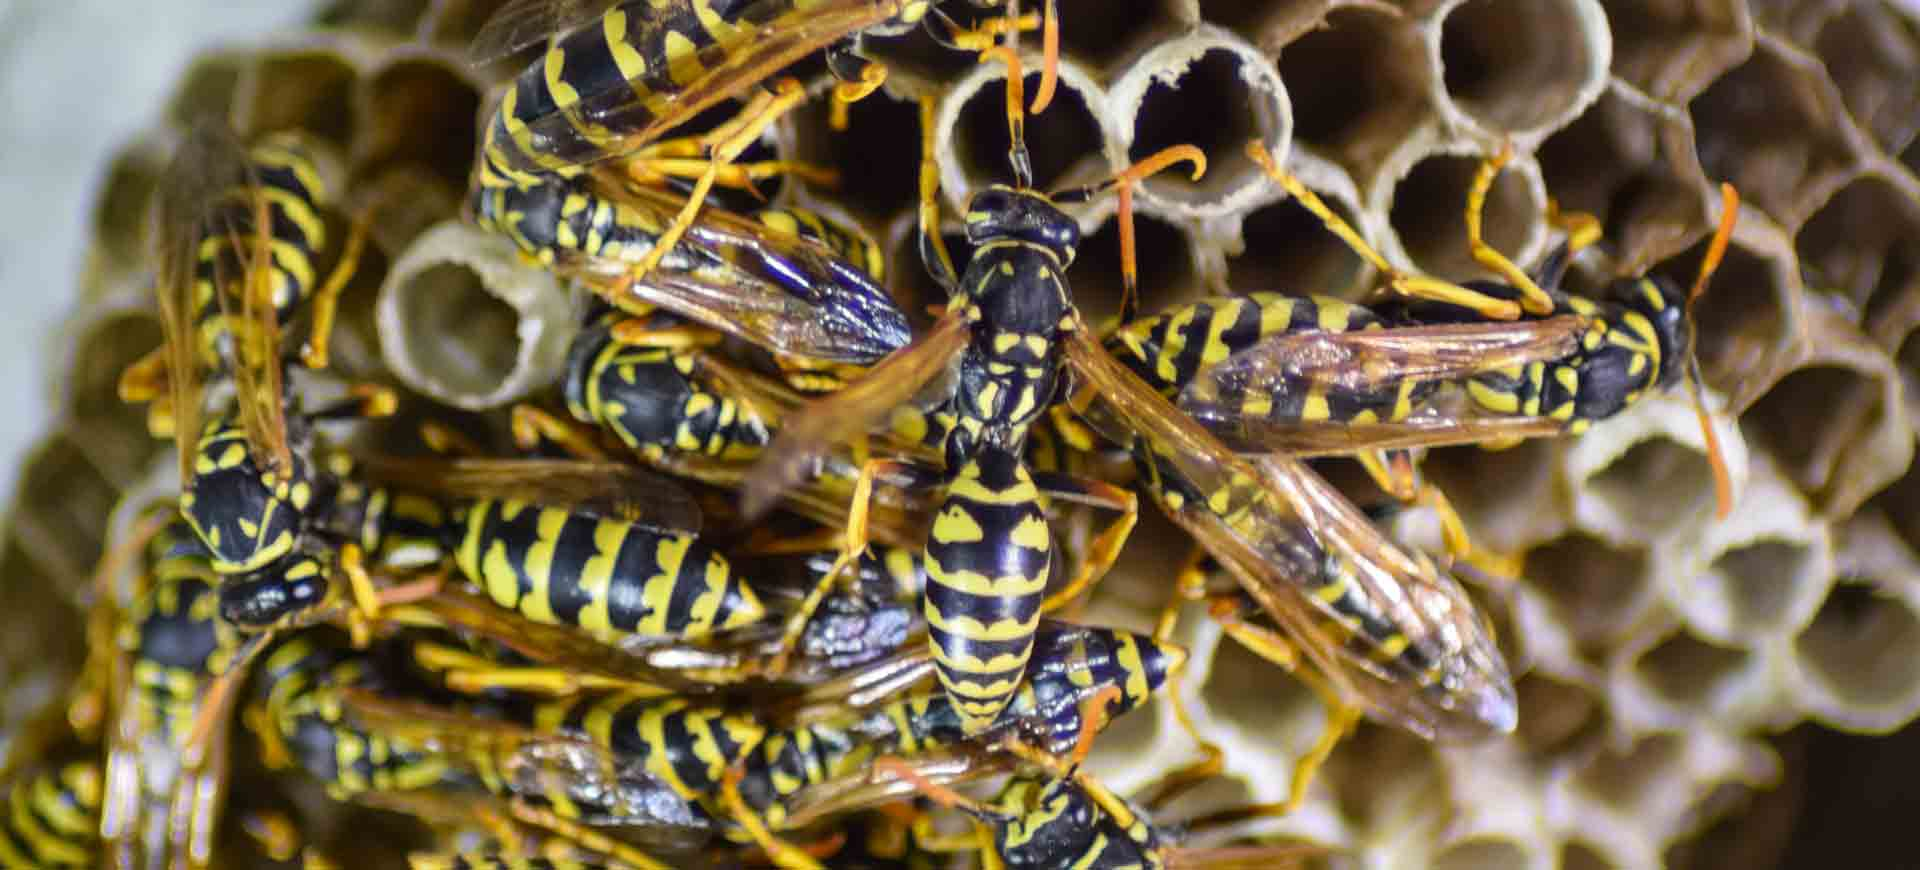 wasp pest control bay park